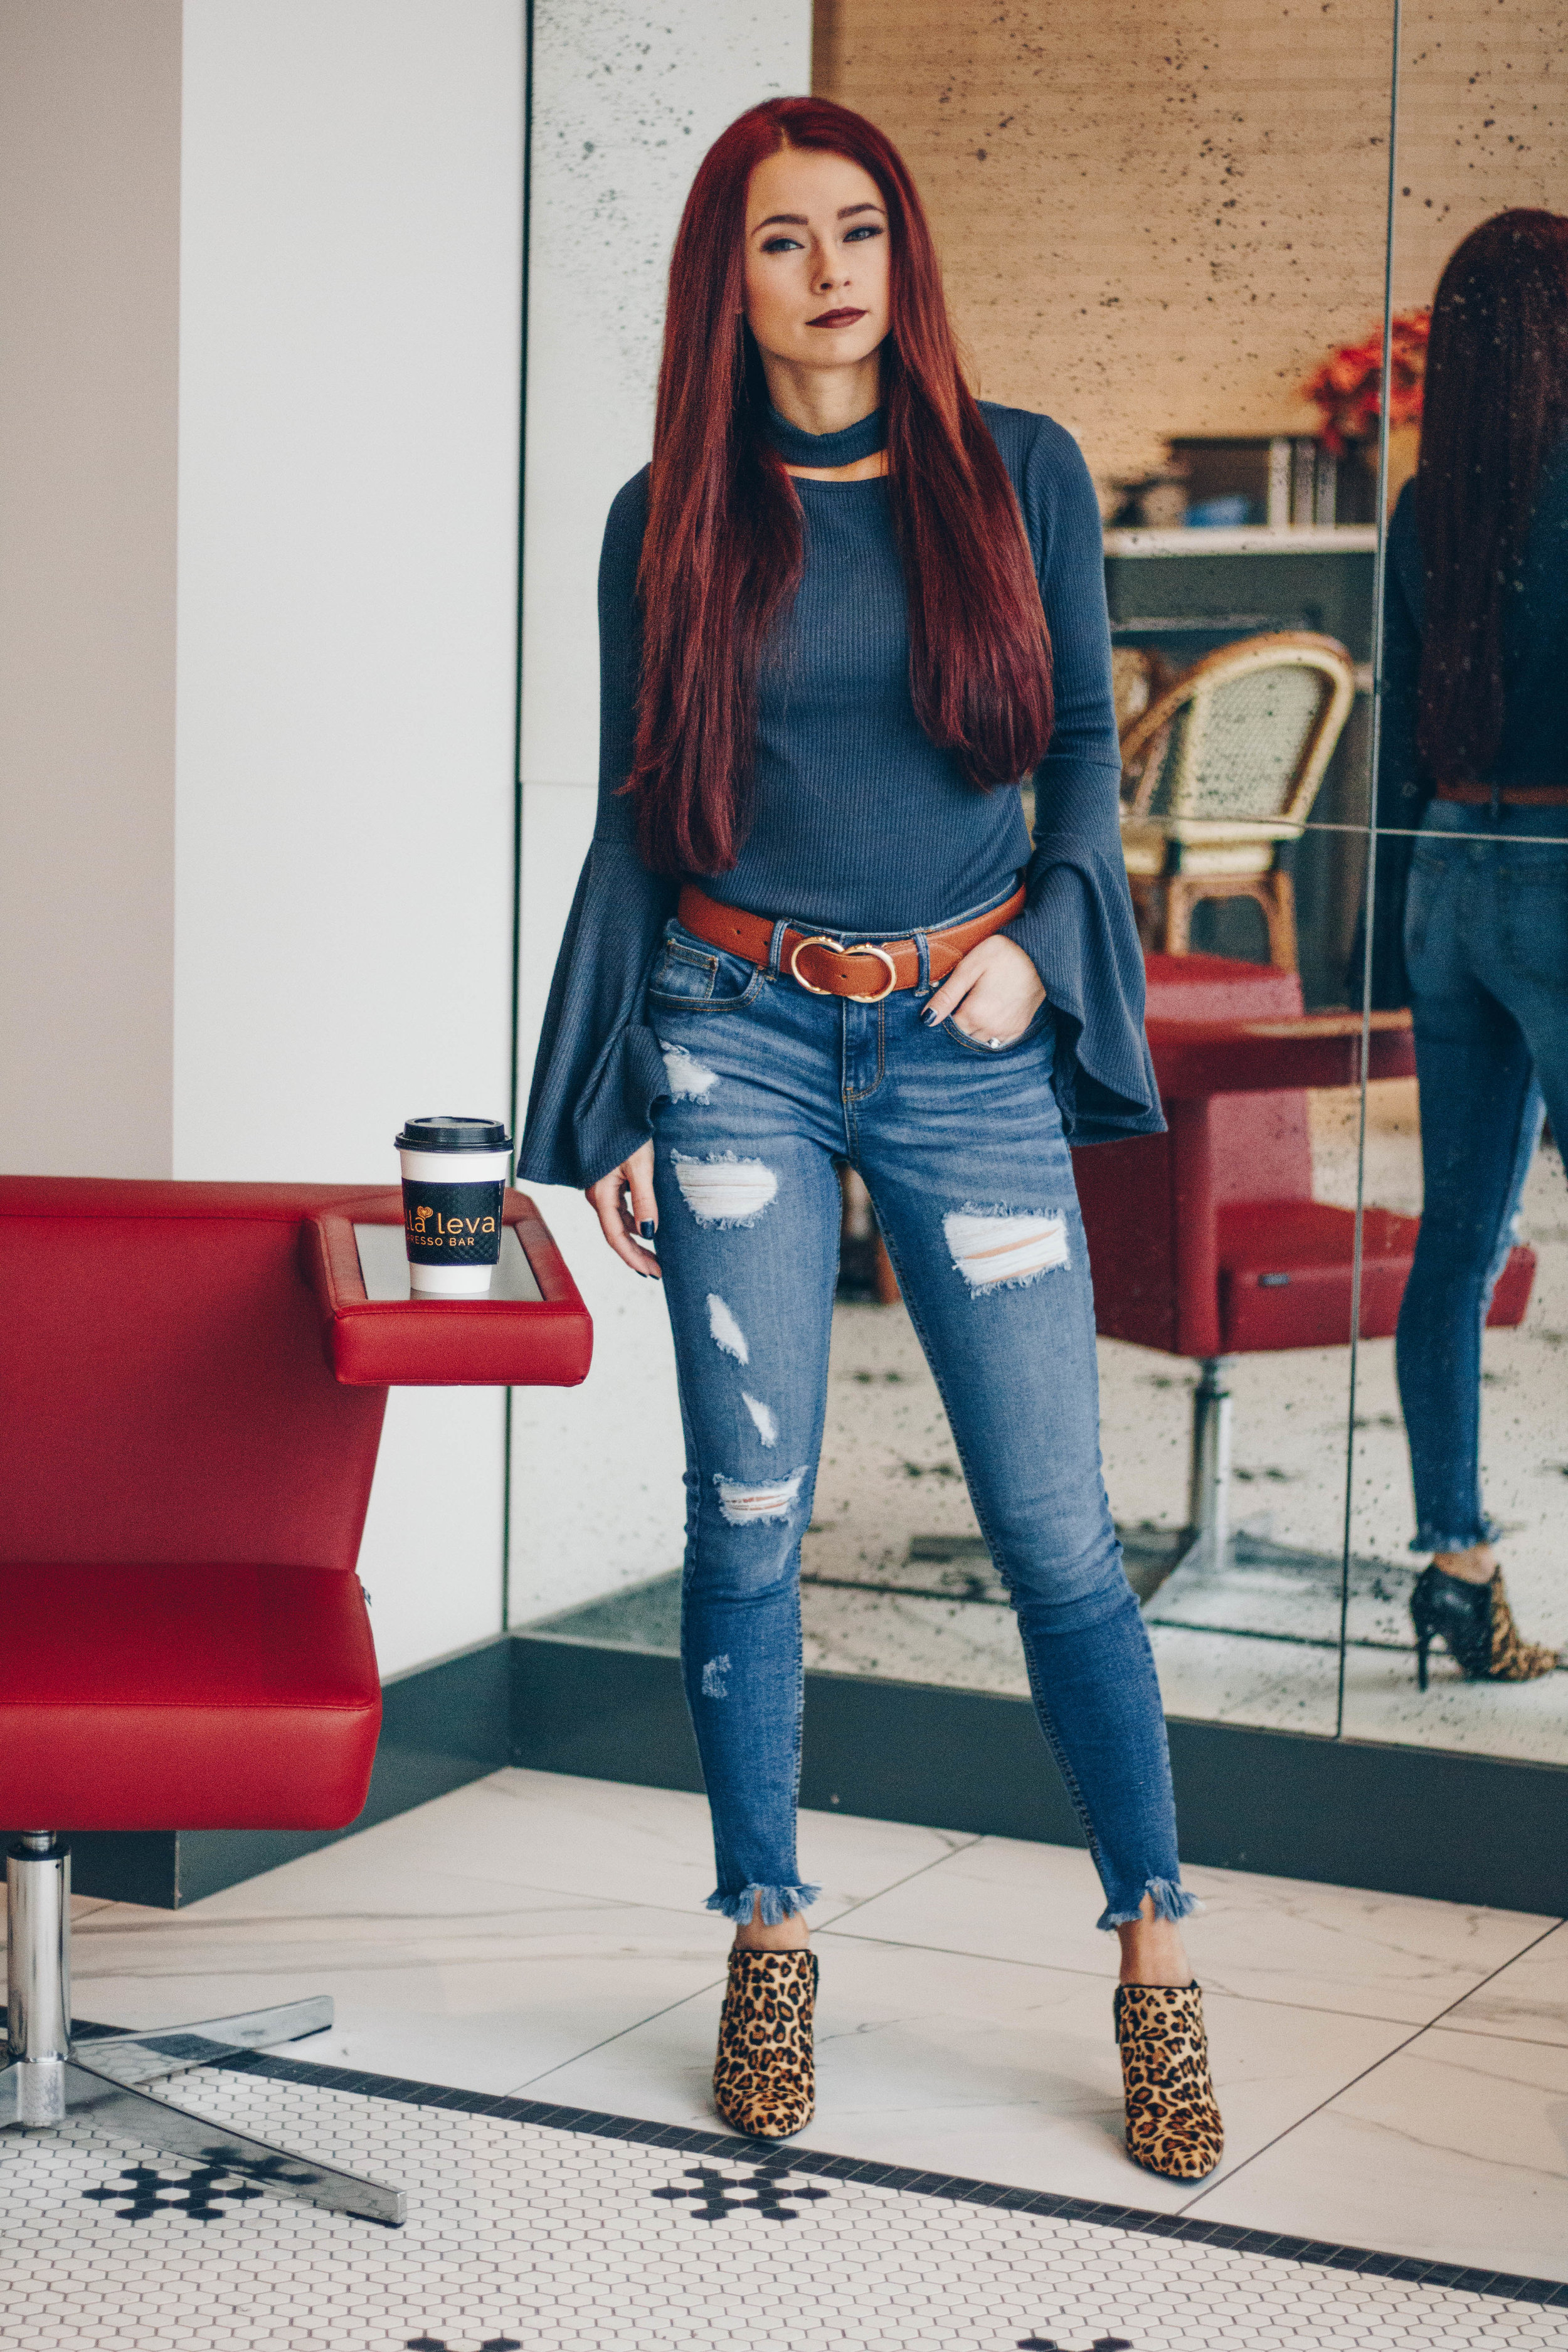 dellaleva-6.jpg - How to use Pinterest by popular Indianapolis fashion blogger Trendy in Indy